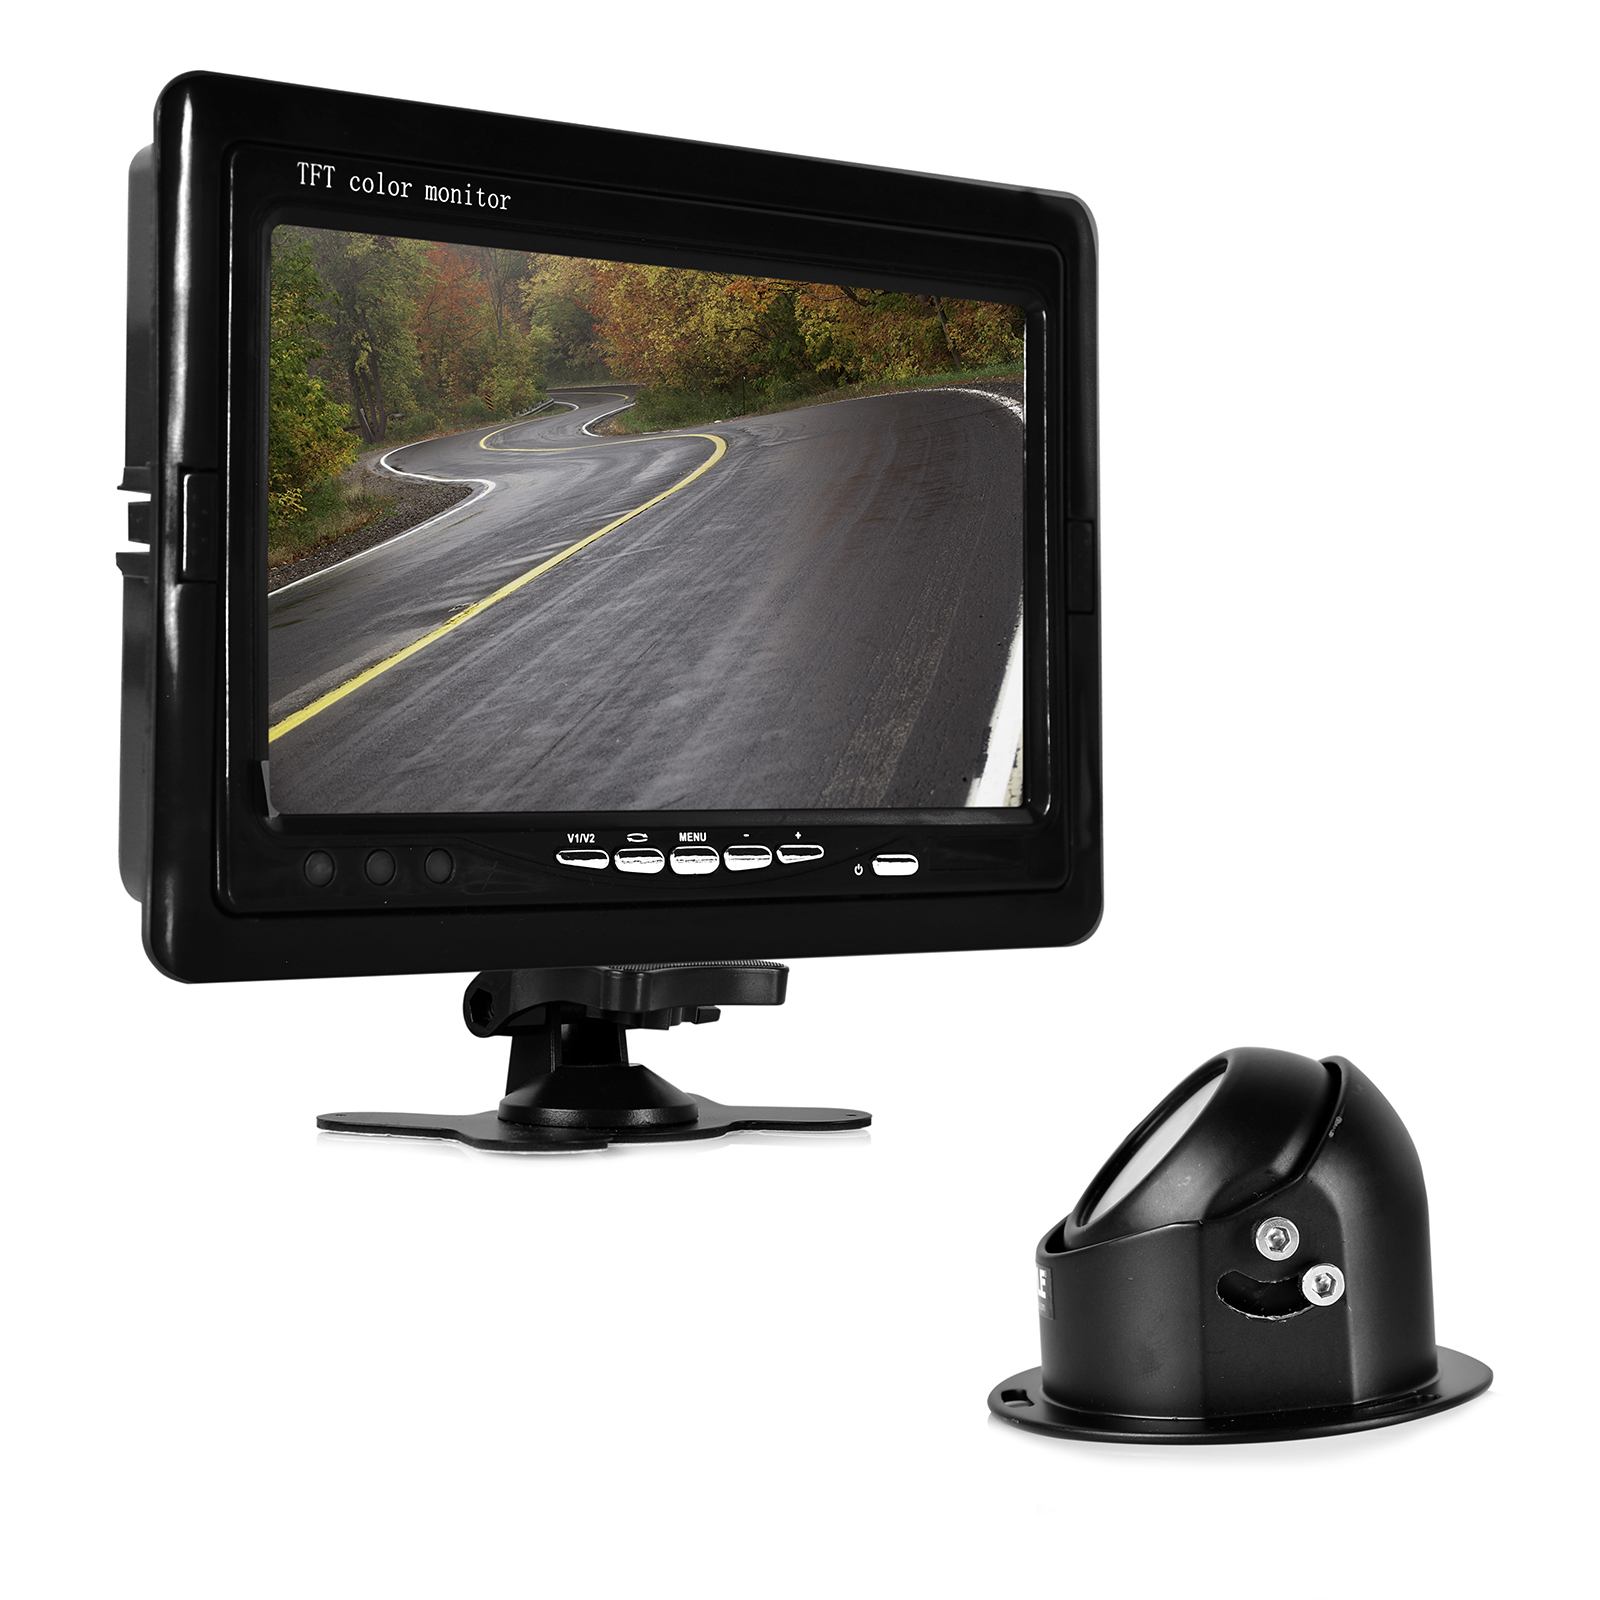 "Rearview Backup Camera & Video Monitor System Kit, Waterproof Angle Adjustable Night Vis Cam, 7"" Display, Front or Rear Vehicle Mounting"